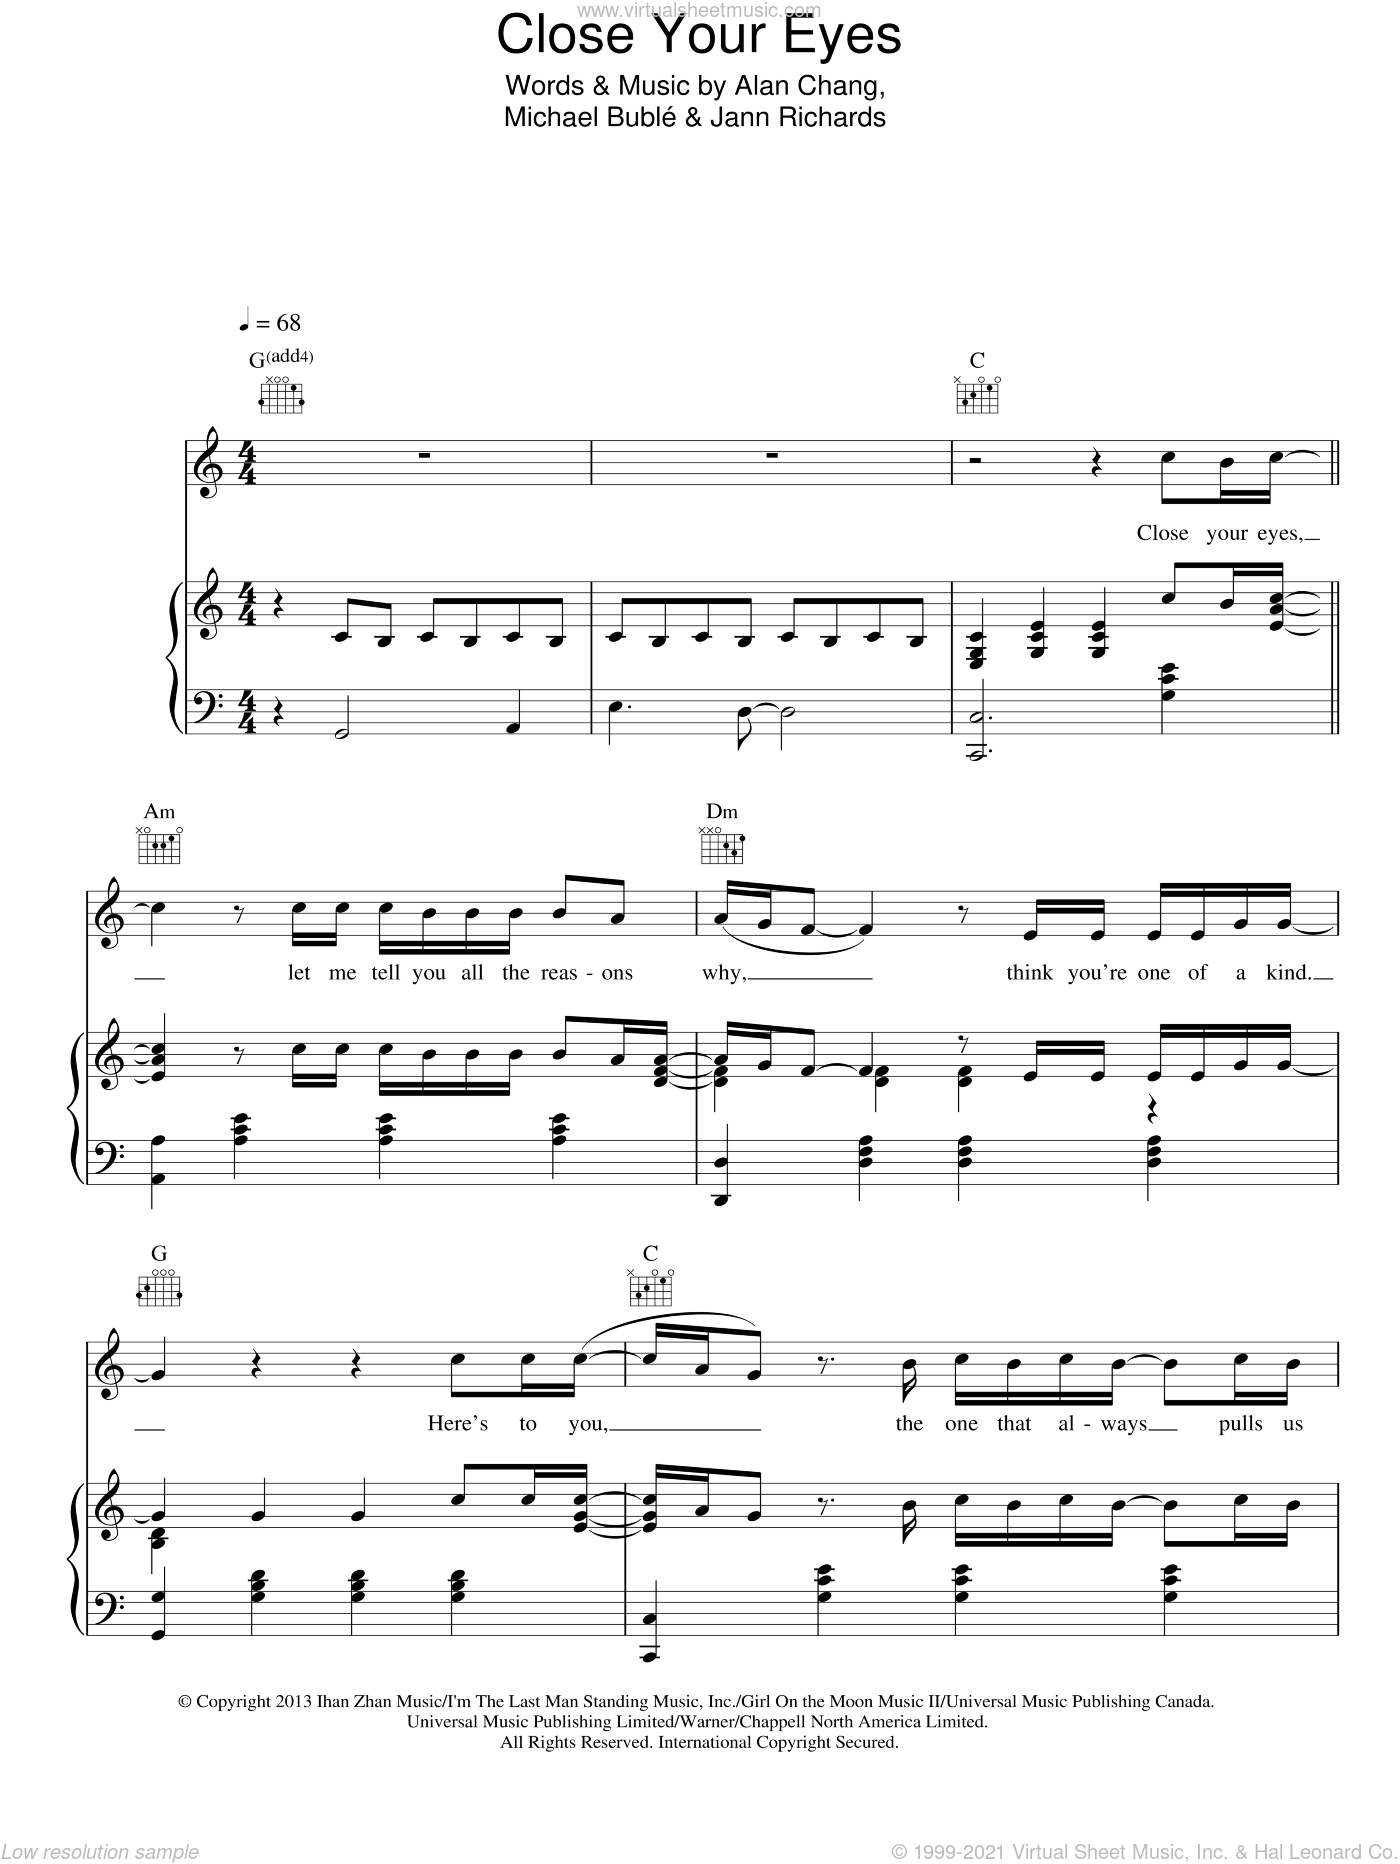 Close Your Eyes sheet music for voice, piano or guitar by Jann Richards